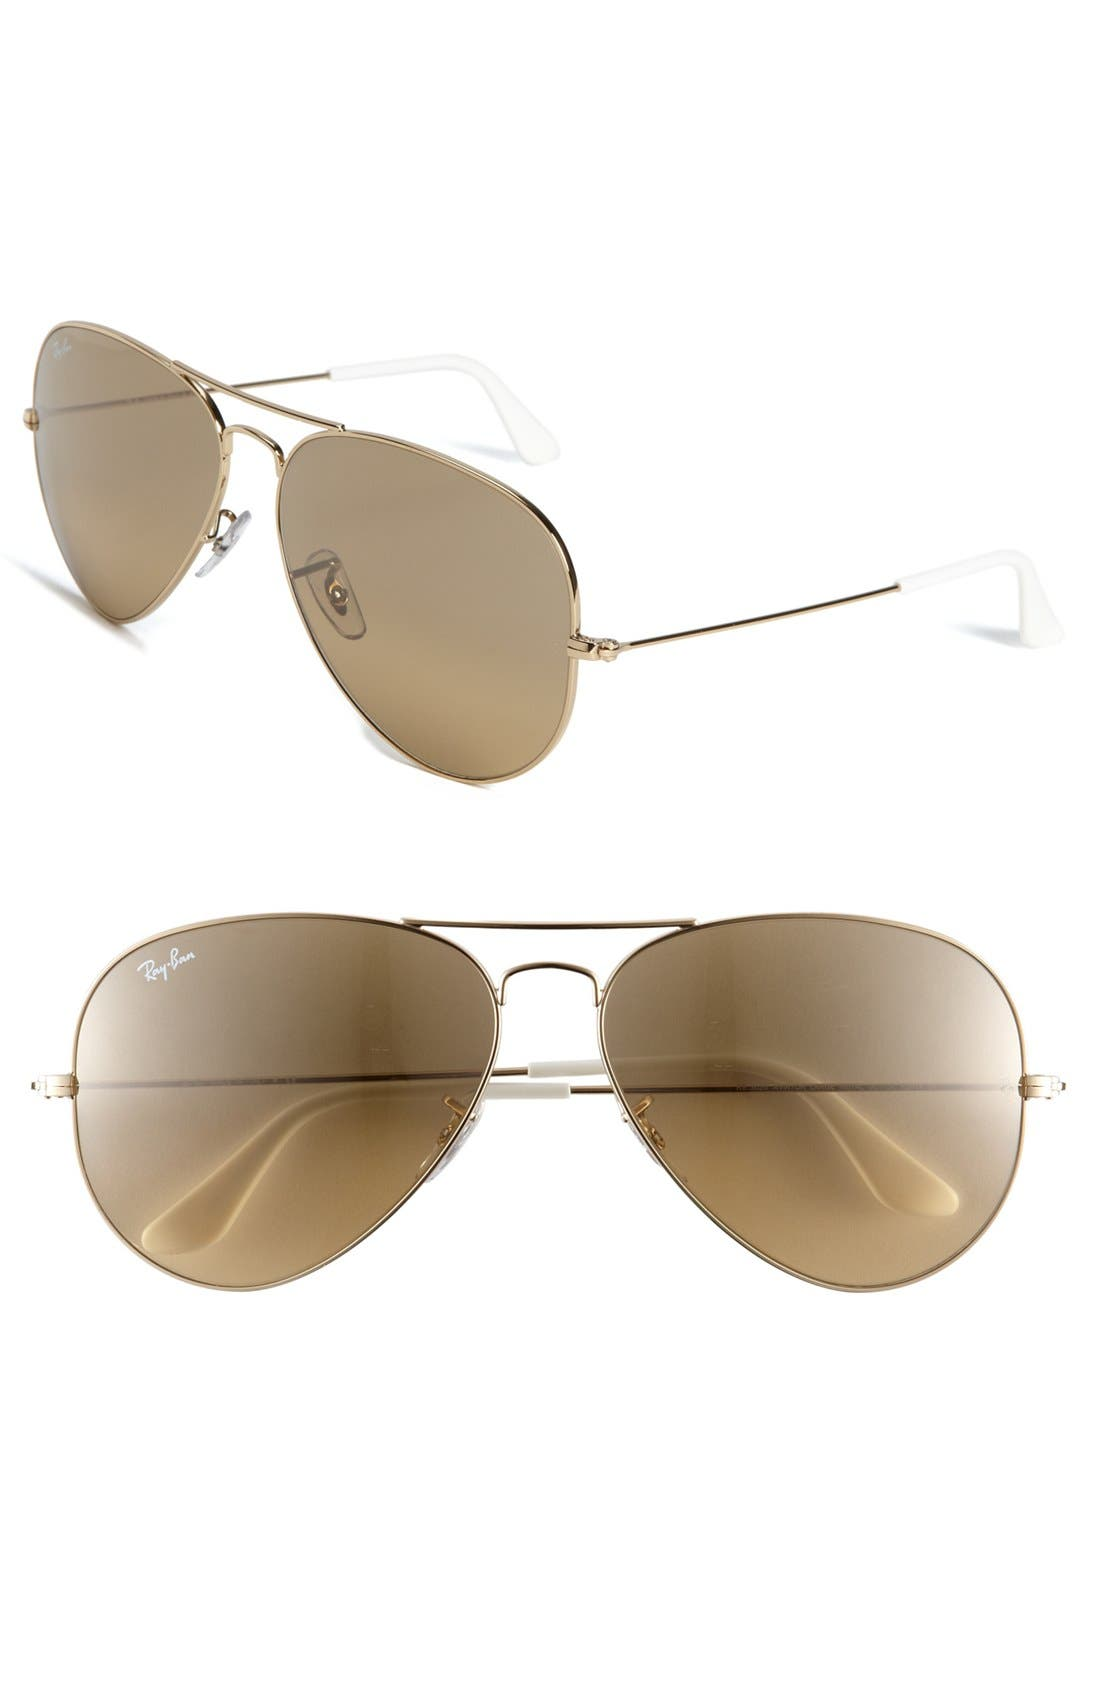 Main Image - Ray-Ban Large Original 62mm Aviator Sunglasses